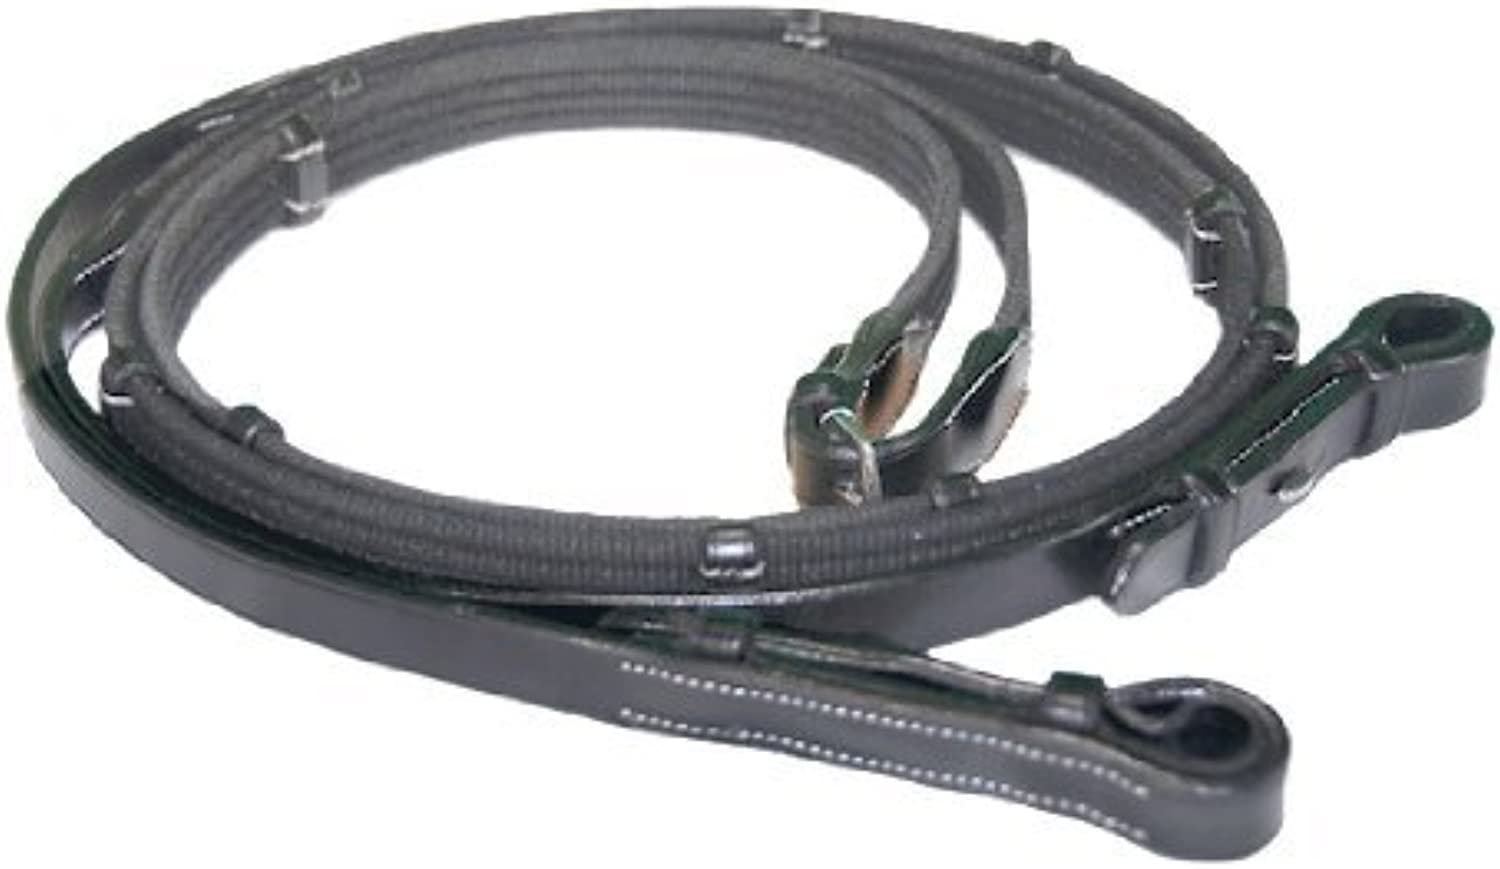 Exselle Web Reins with Stops by Exselle Leather nnuvsz6881-Sporting